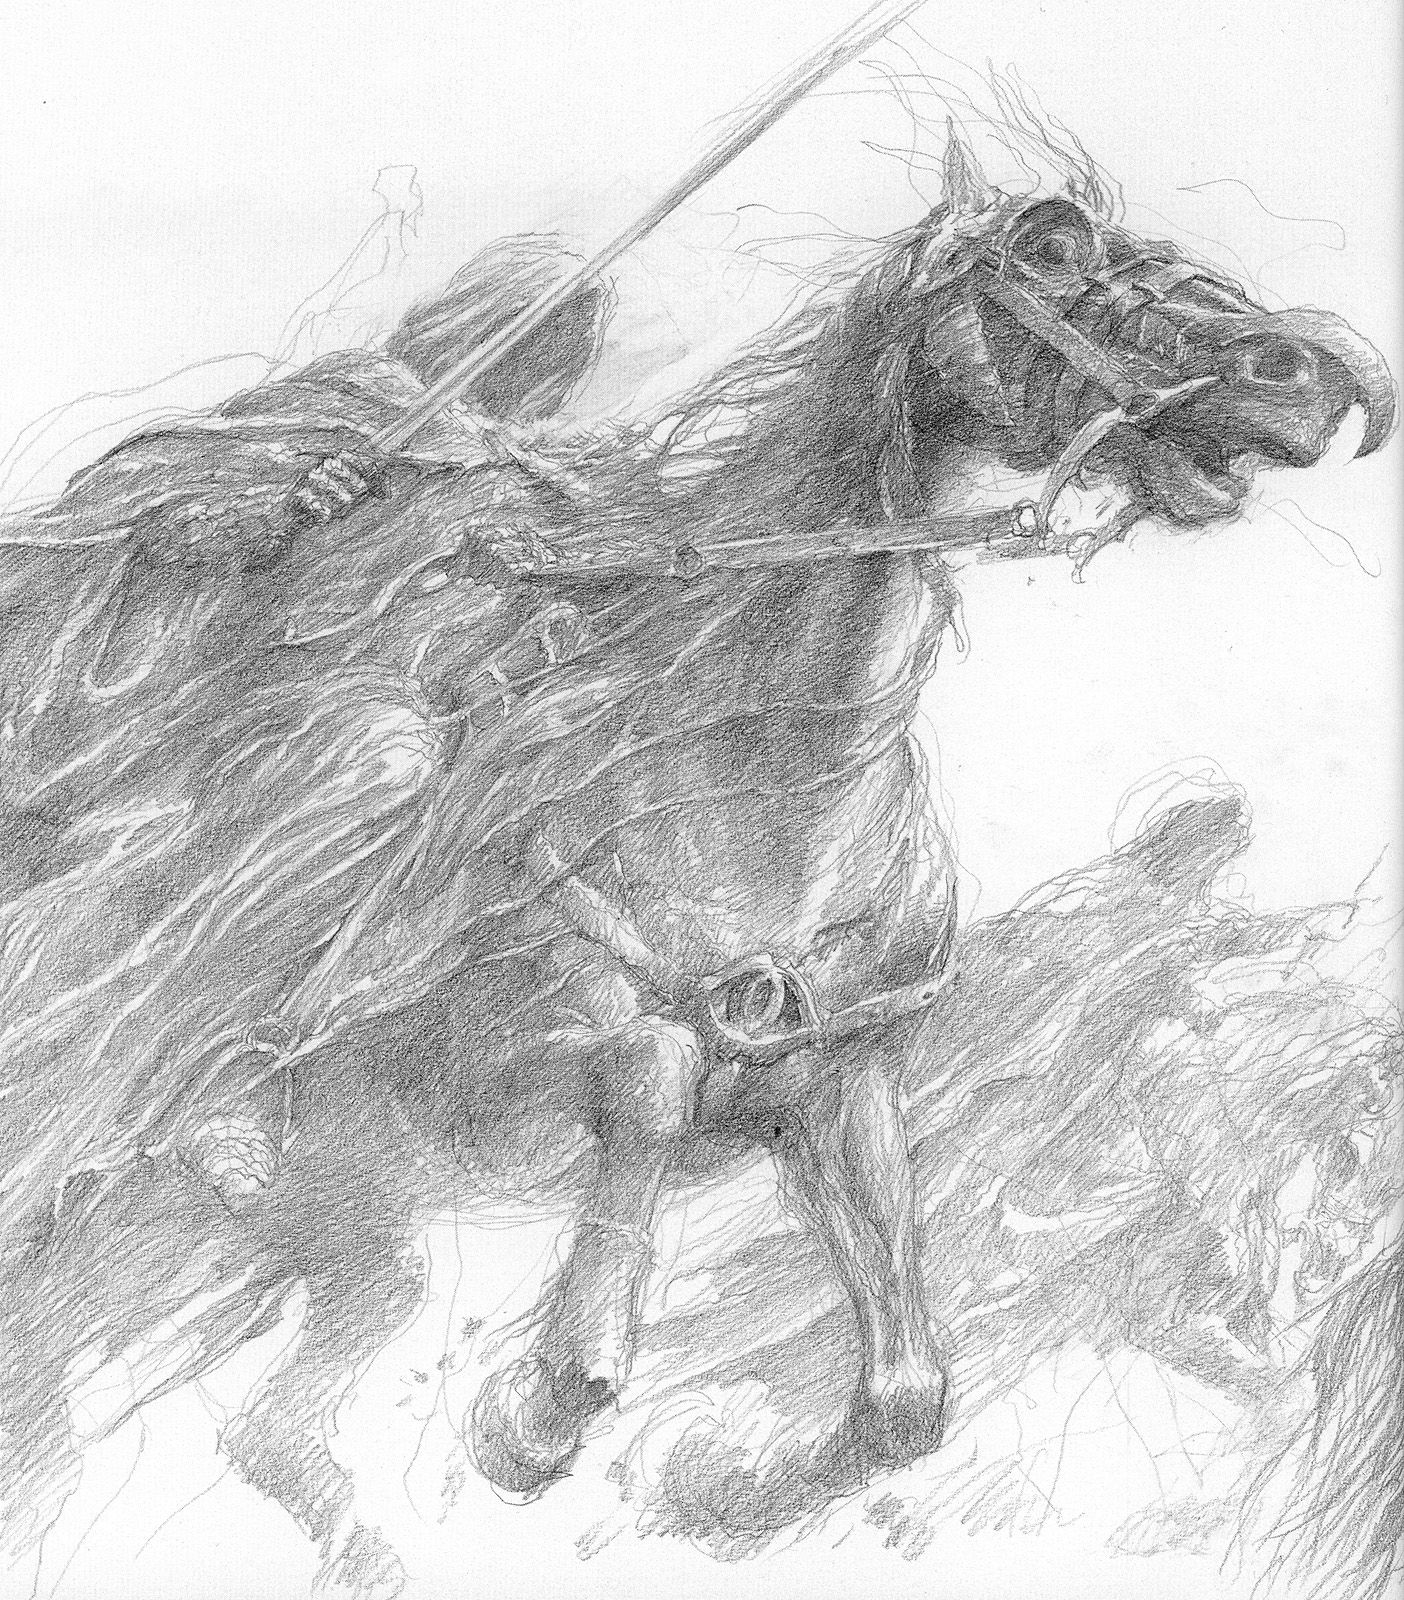 Lord Of The Rings Nazgul Concept Art By Mike Ploog: Alan_lee_the Lord Of The Rings_sketchbook_03_nazguls03.jpg